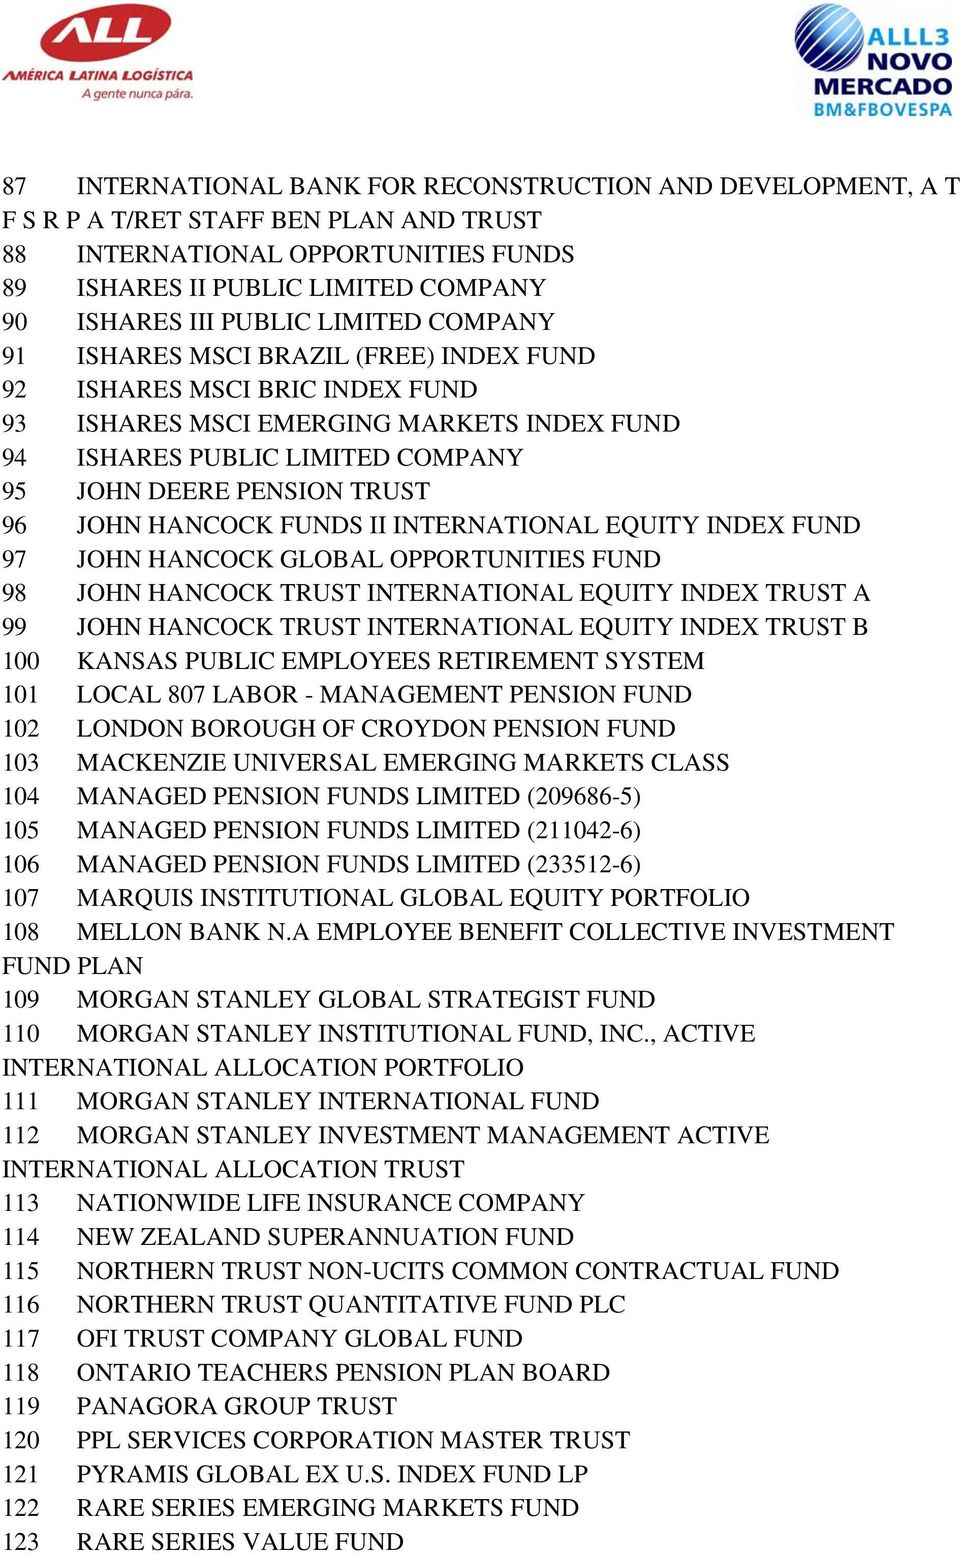 JOHN HANCOCK FUNDS II INTERNATIONAL EQUITY INDEX FUND 97 JOHN HANCOCK GLOBAL OPPORTUNITIES FUND 98 JOHN HANCOCK TRUST INTERNATIONAL EQUITY INDEX TRUST A 99 JOHN HANCOCK TRUST INTERNATIONAL EQUITY